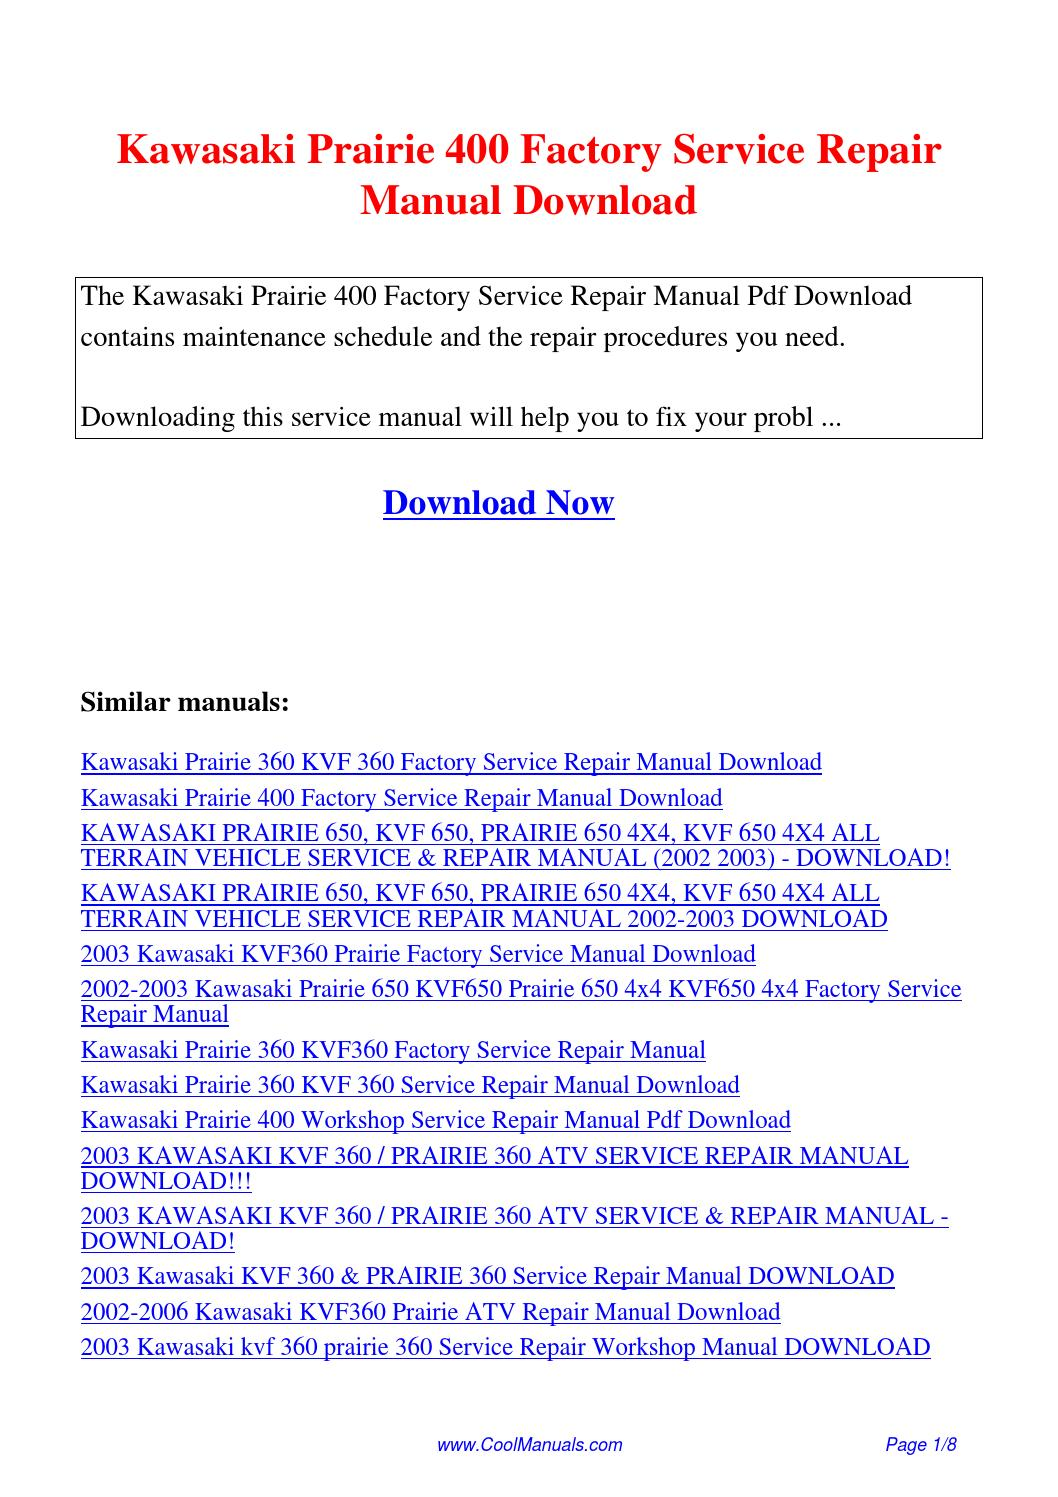 Kawasaki Prairie 400 Factory Service Repair Manual.pdf by Linda Pong - issuu